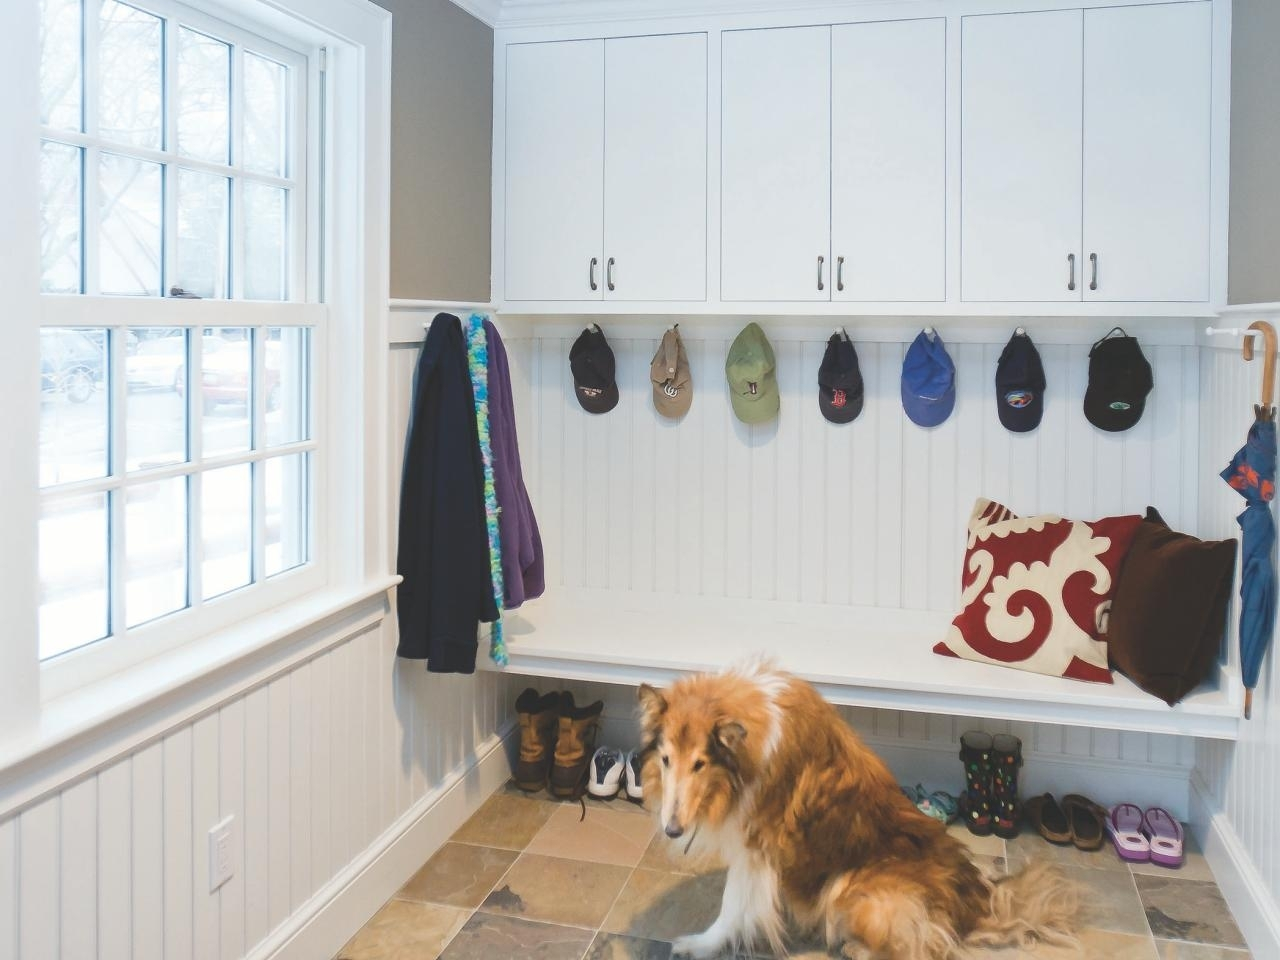 10 Great Mudroom Ideas For Small Spaces %name 2021